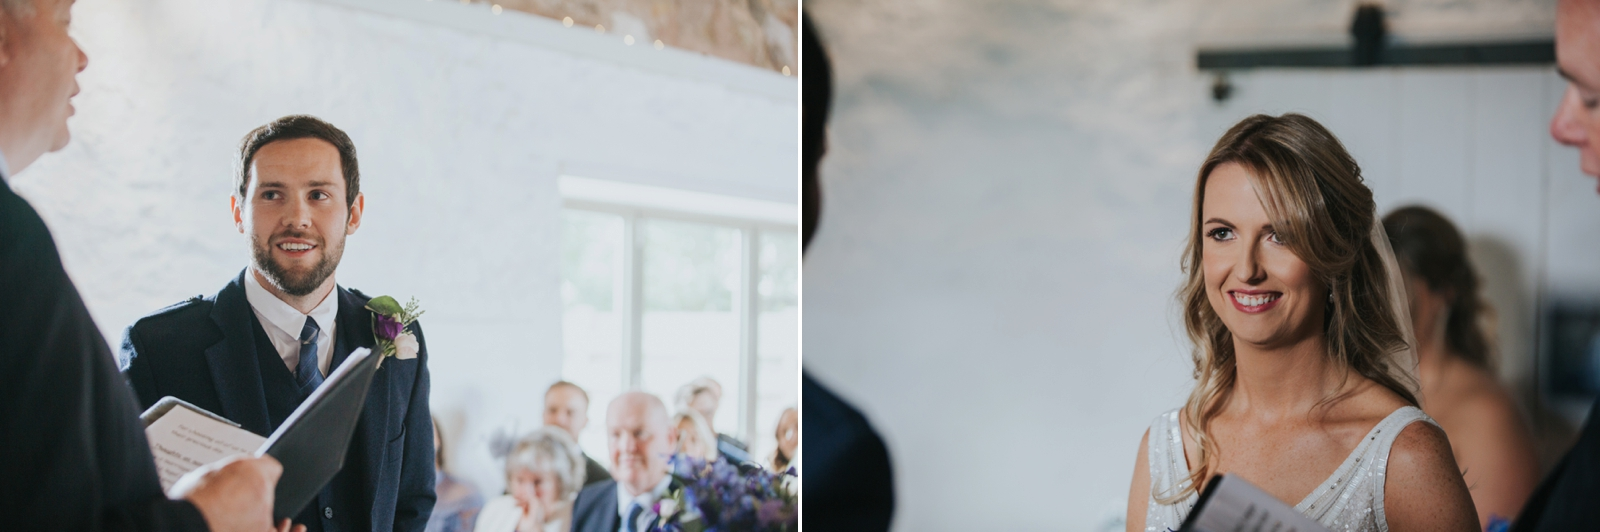 cow-shed-crail-rustic-wedding-gemma-andy-loraine-ross-photographygemma-andy-wedding-0318.jpg